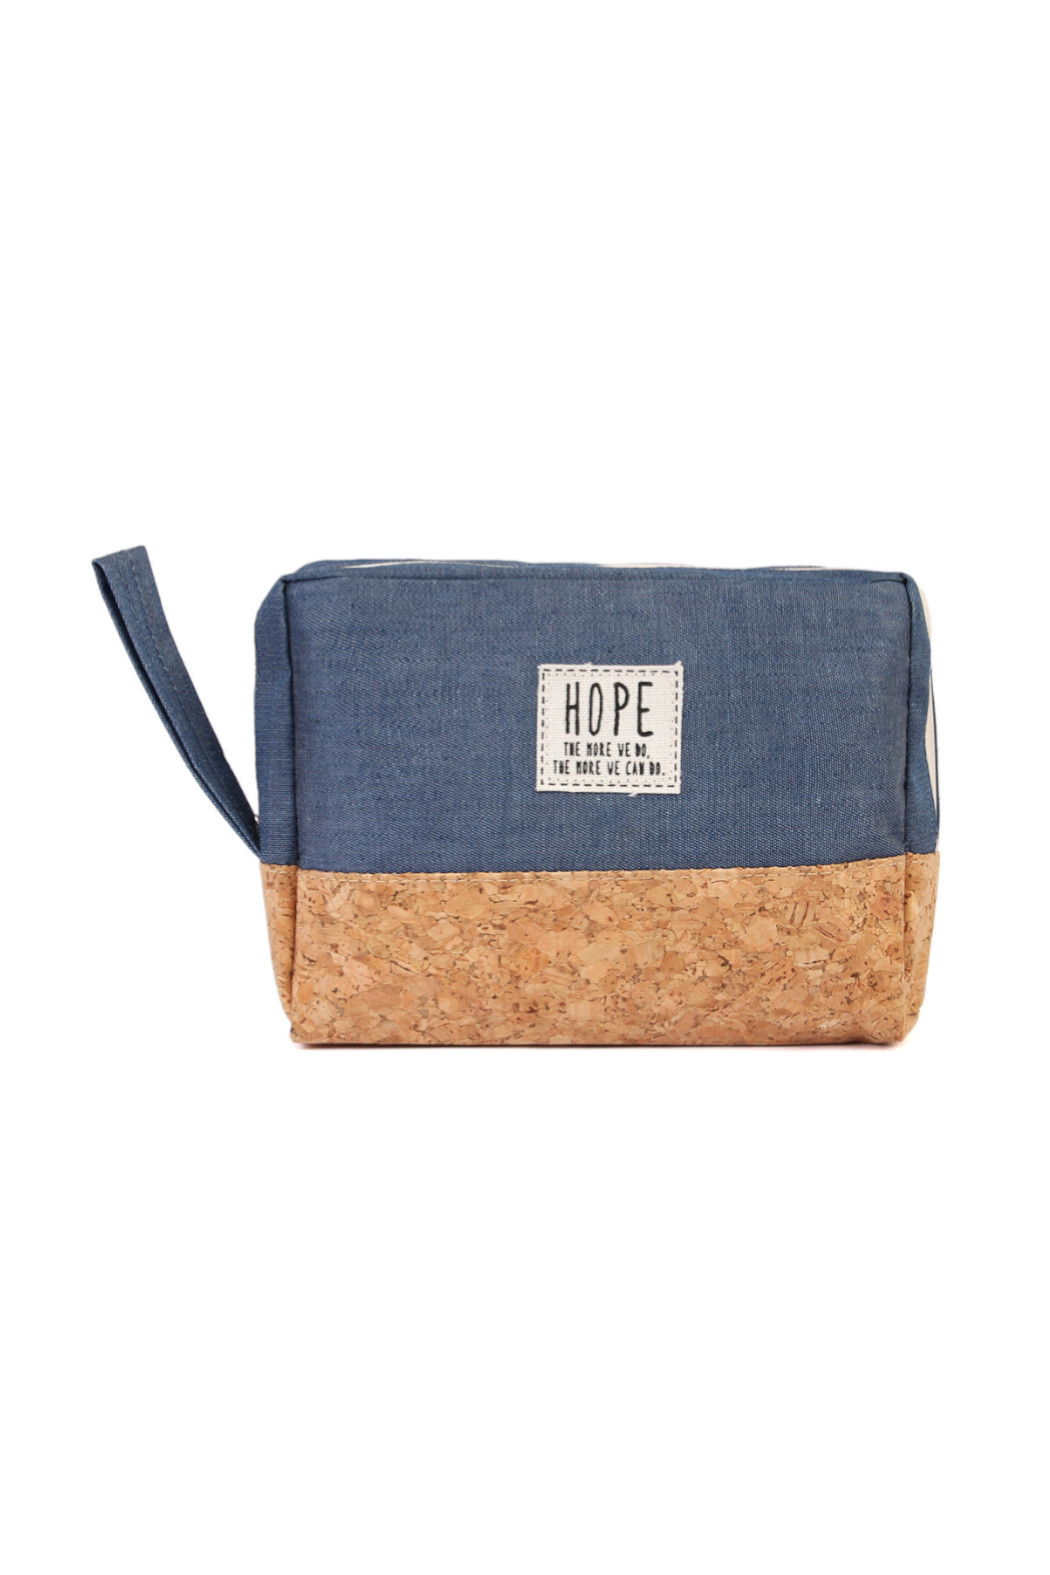 TPO HOPE Blue Canvas Cosmetic Pouch - Main Image